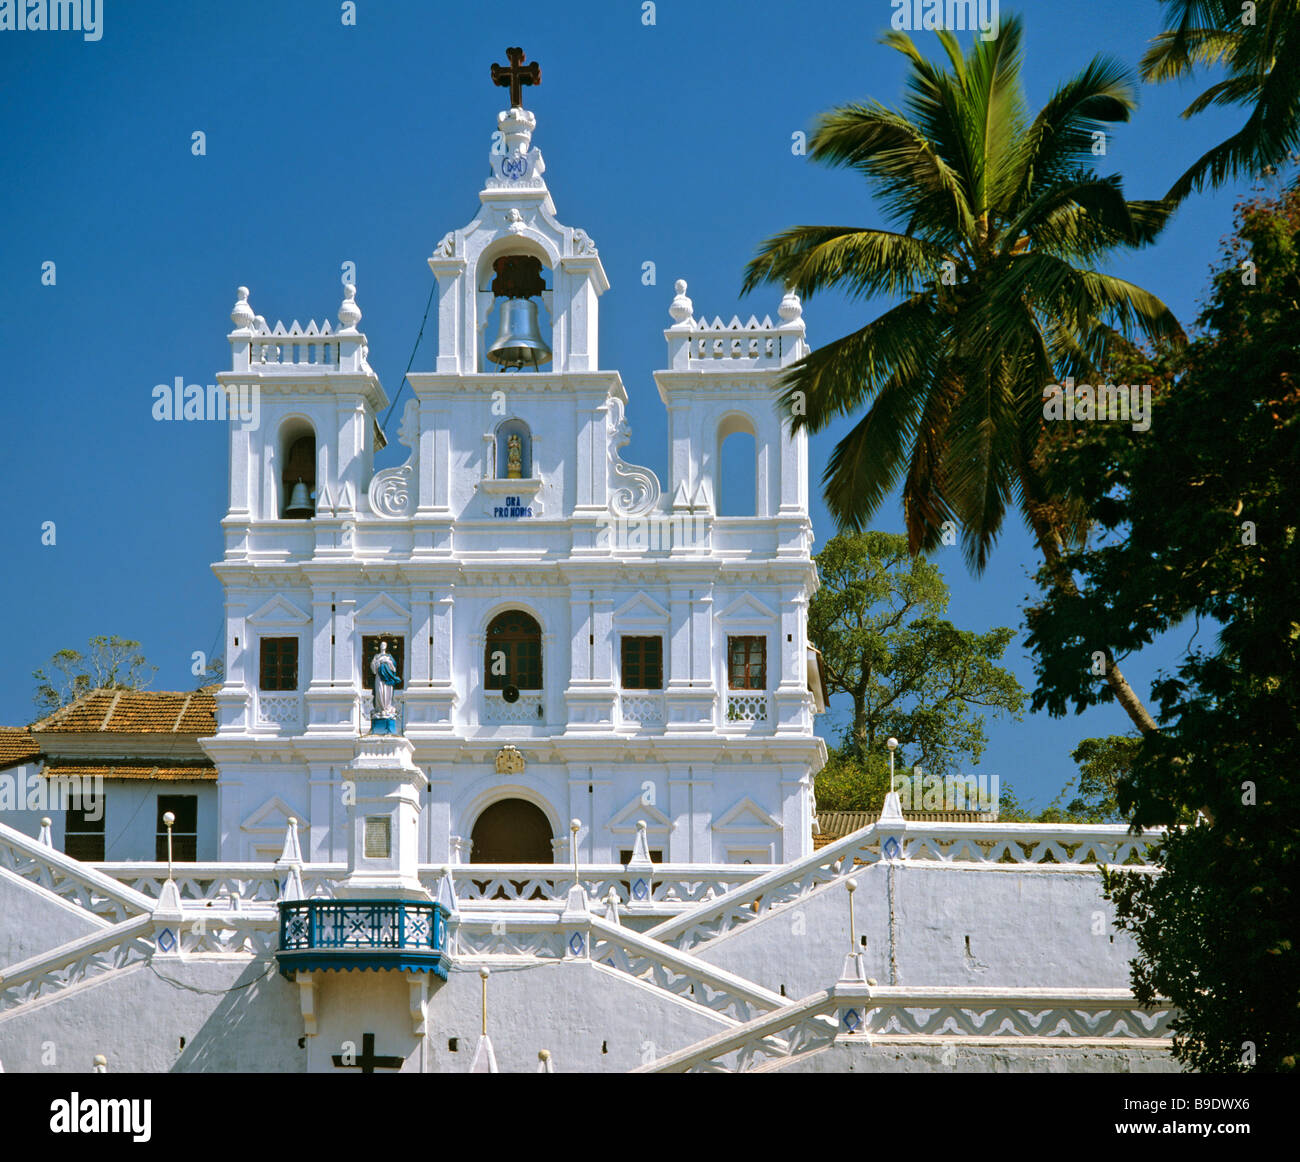 Church of the Immaculate Conception in Panaji, Church of St. Mary, cathedral, Goa, India - Stock Image